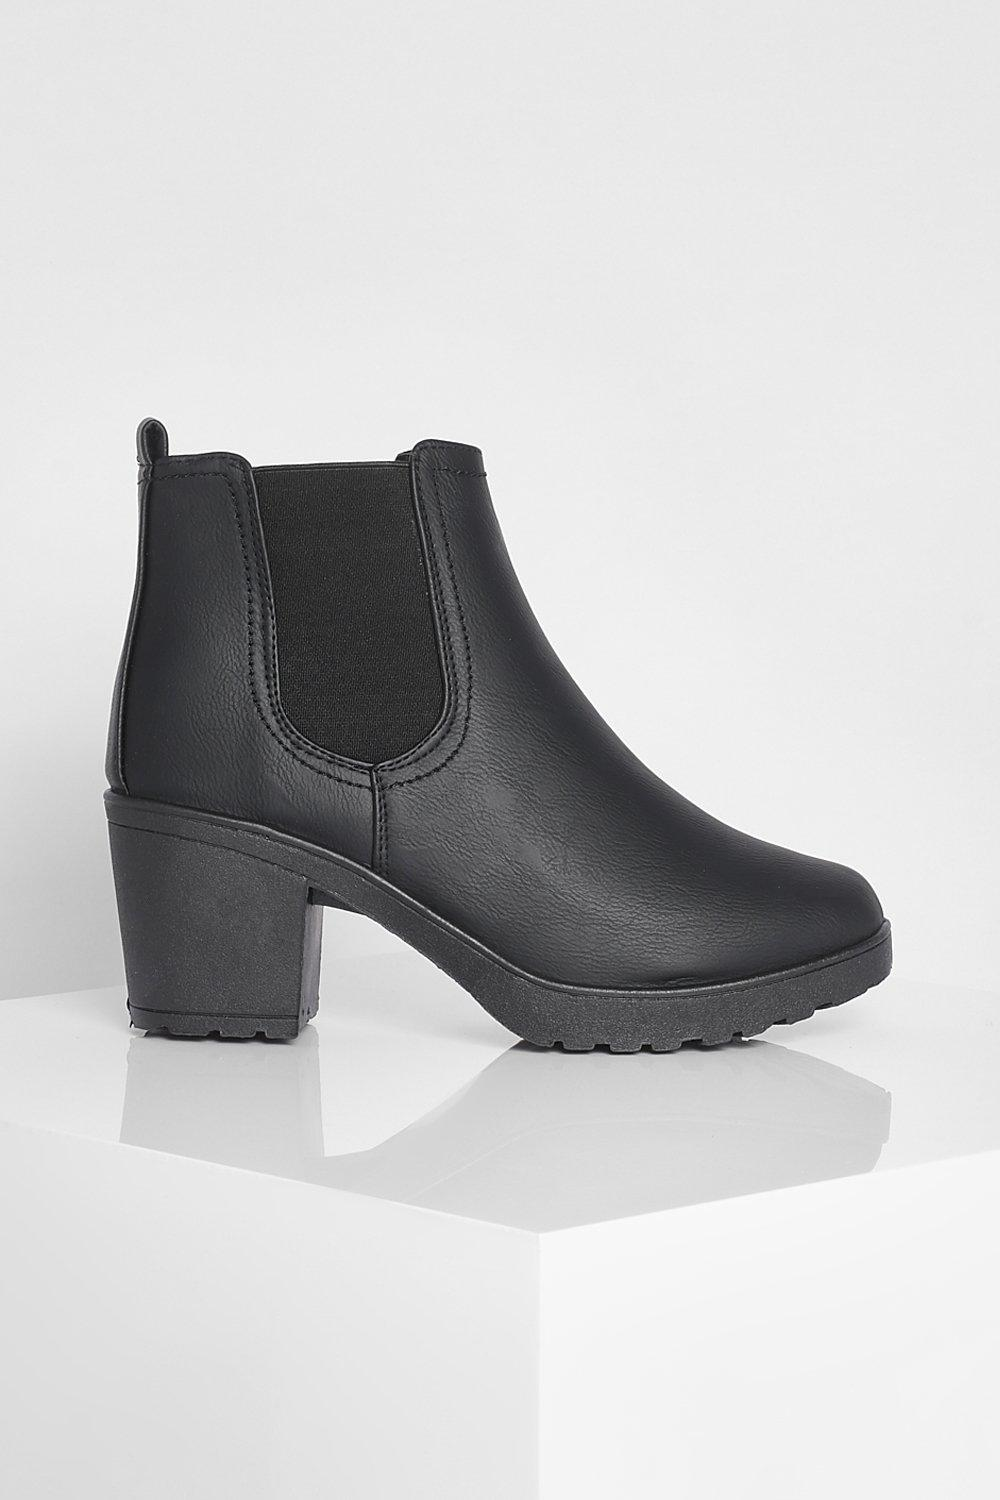 Chunky Heel Chelsea Boots Sale: Save Up to 75% Off! Shop exploreblogirvd.gq's huge selection of Chunky Heel Chelsea Boots - Over 30 styles available. FREE Shipping & .